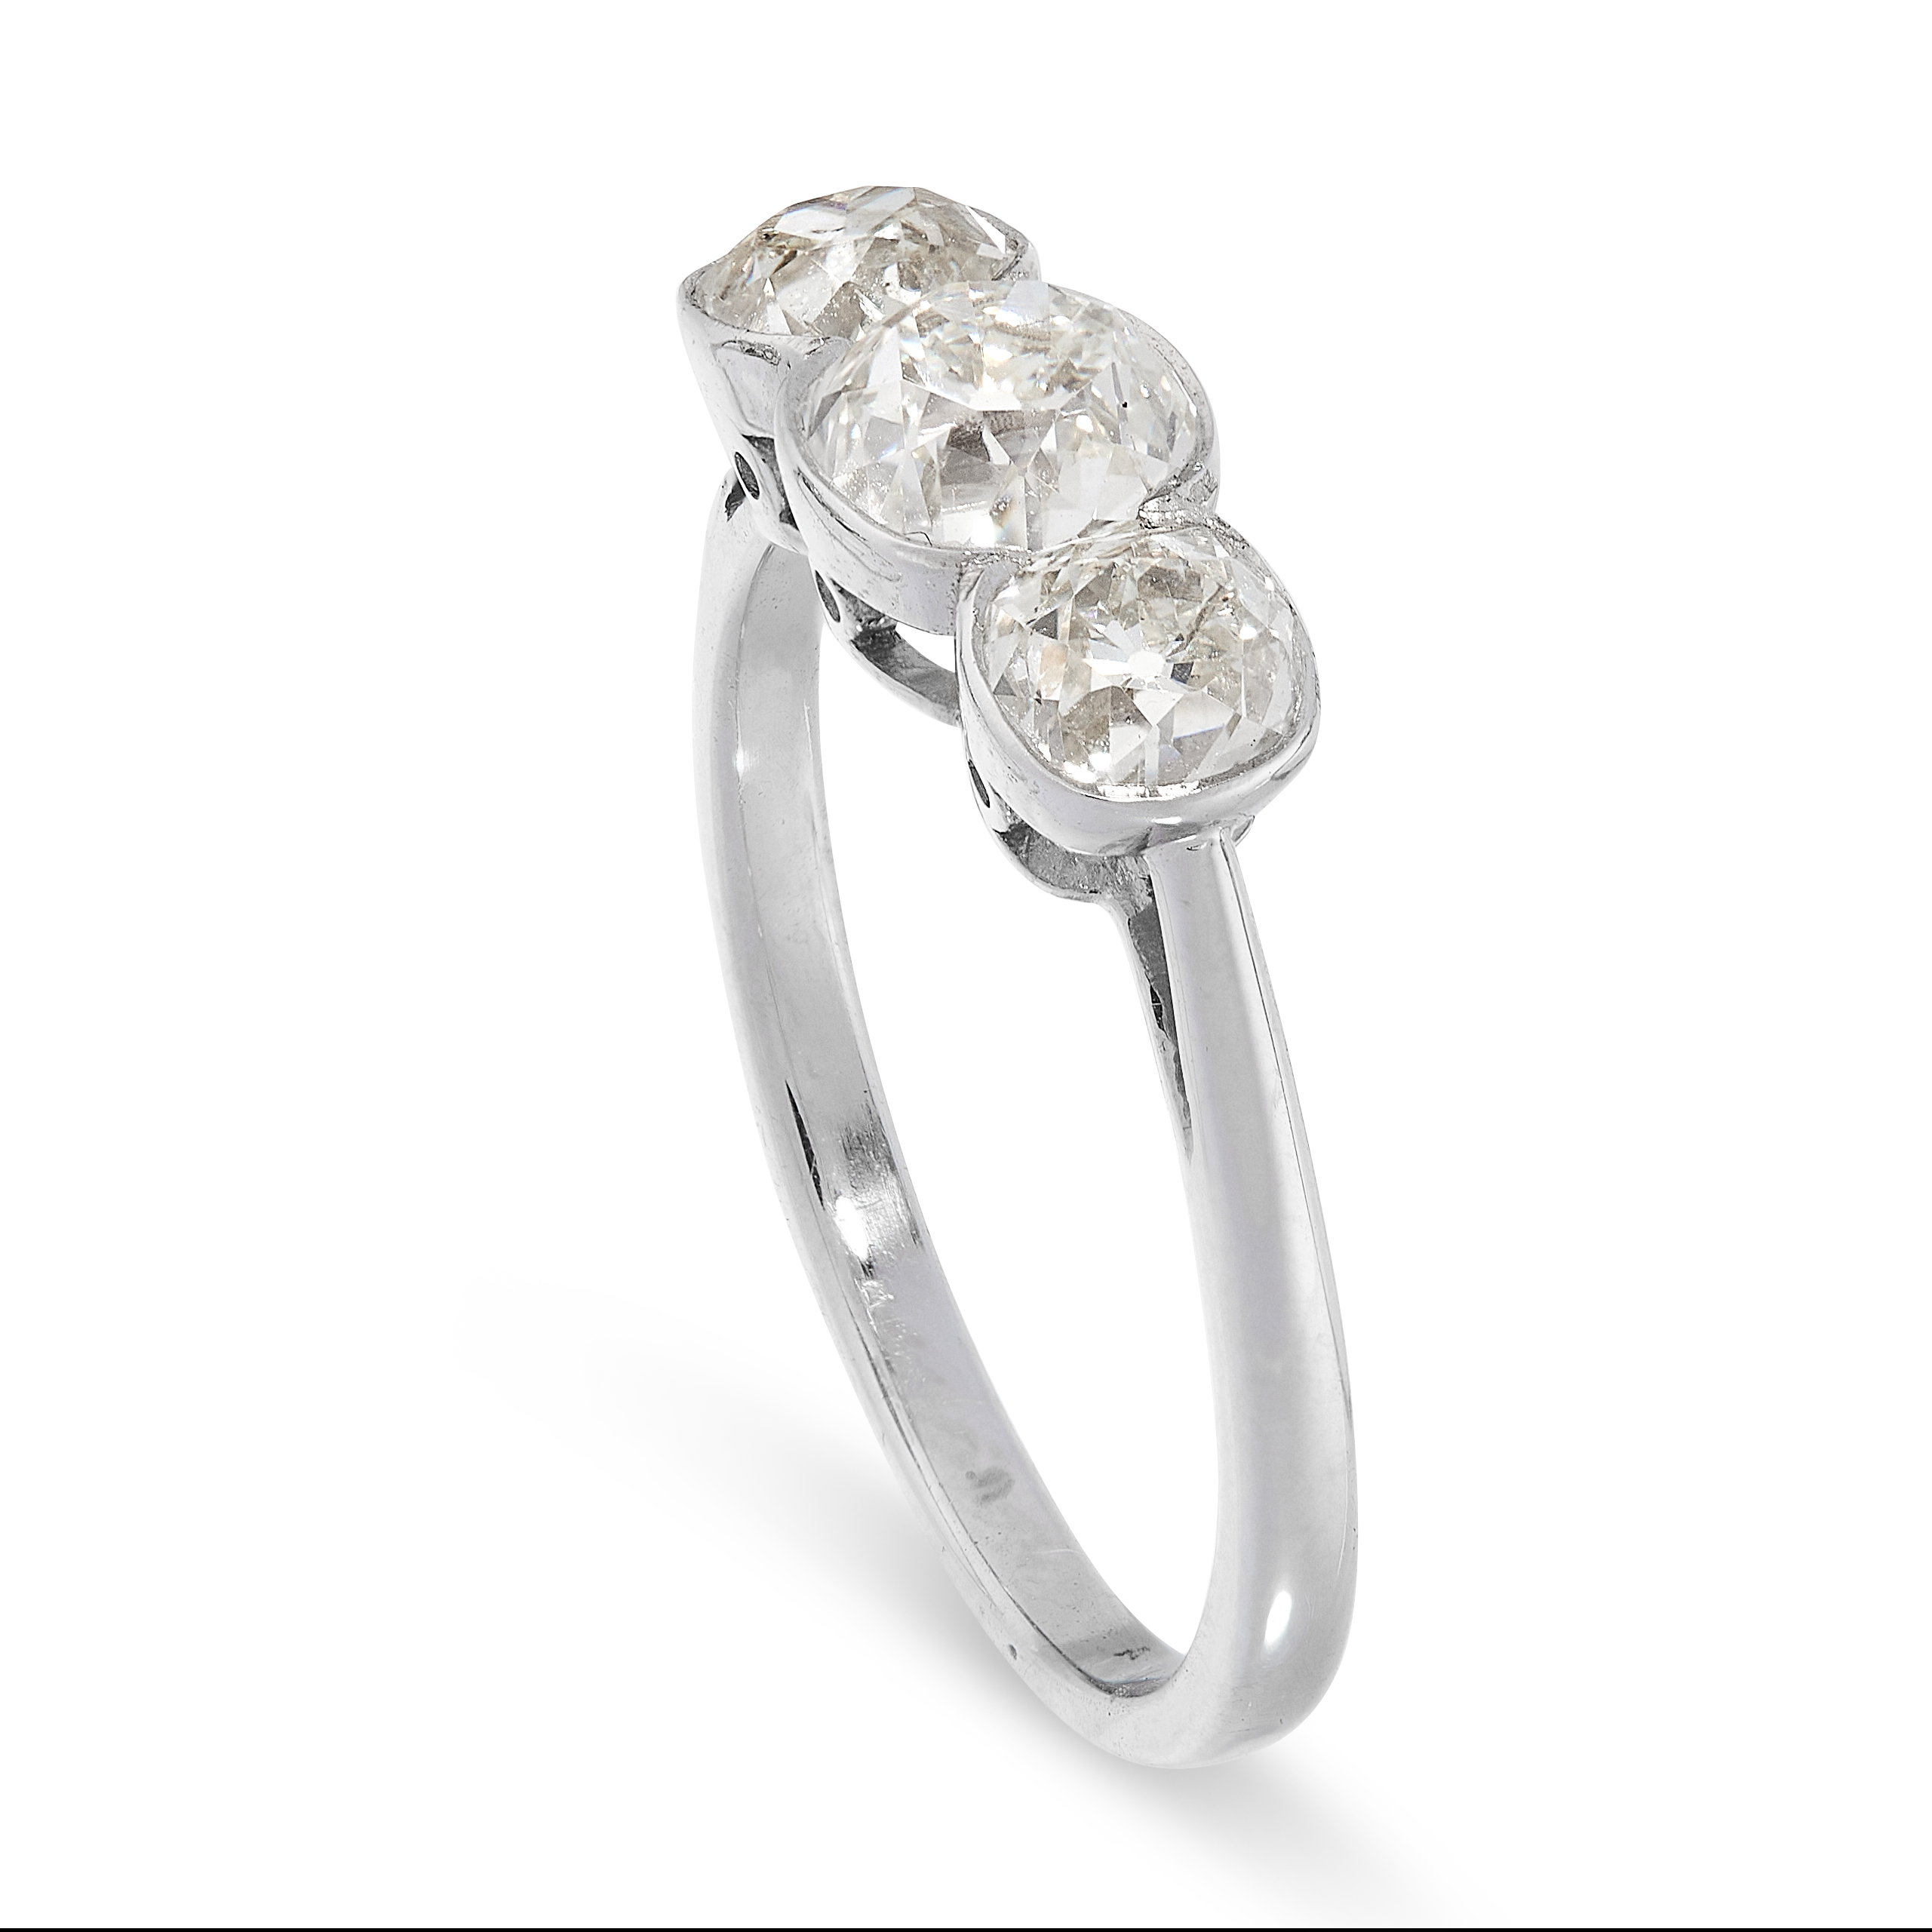 DIAMOND THREE STONE RING comprising of three old cut diamonds totalling 1.57 carats, French marks, - Image 2 of 2